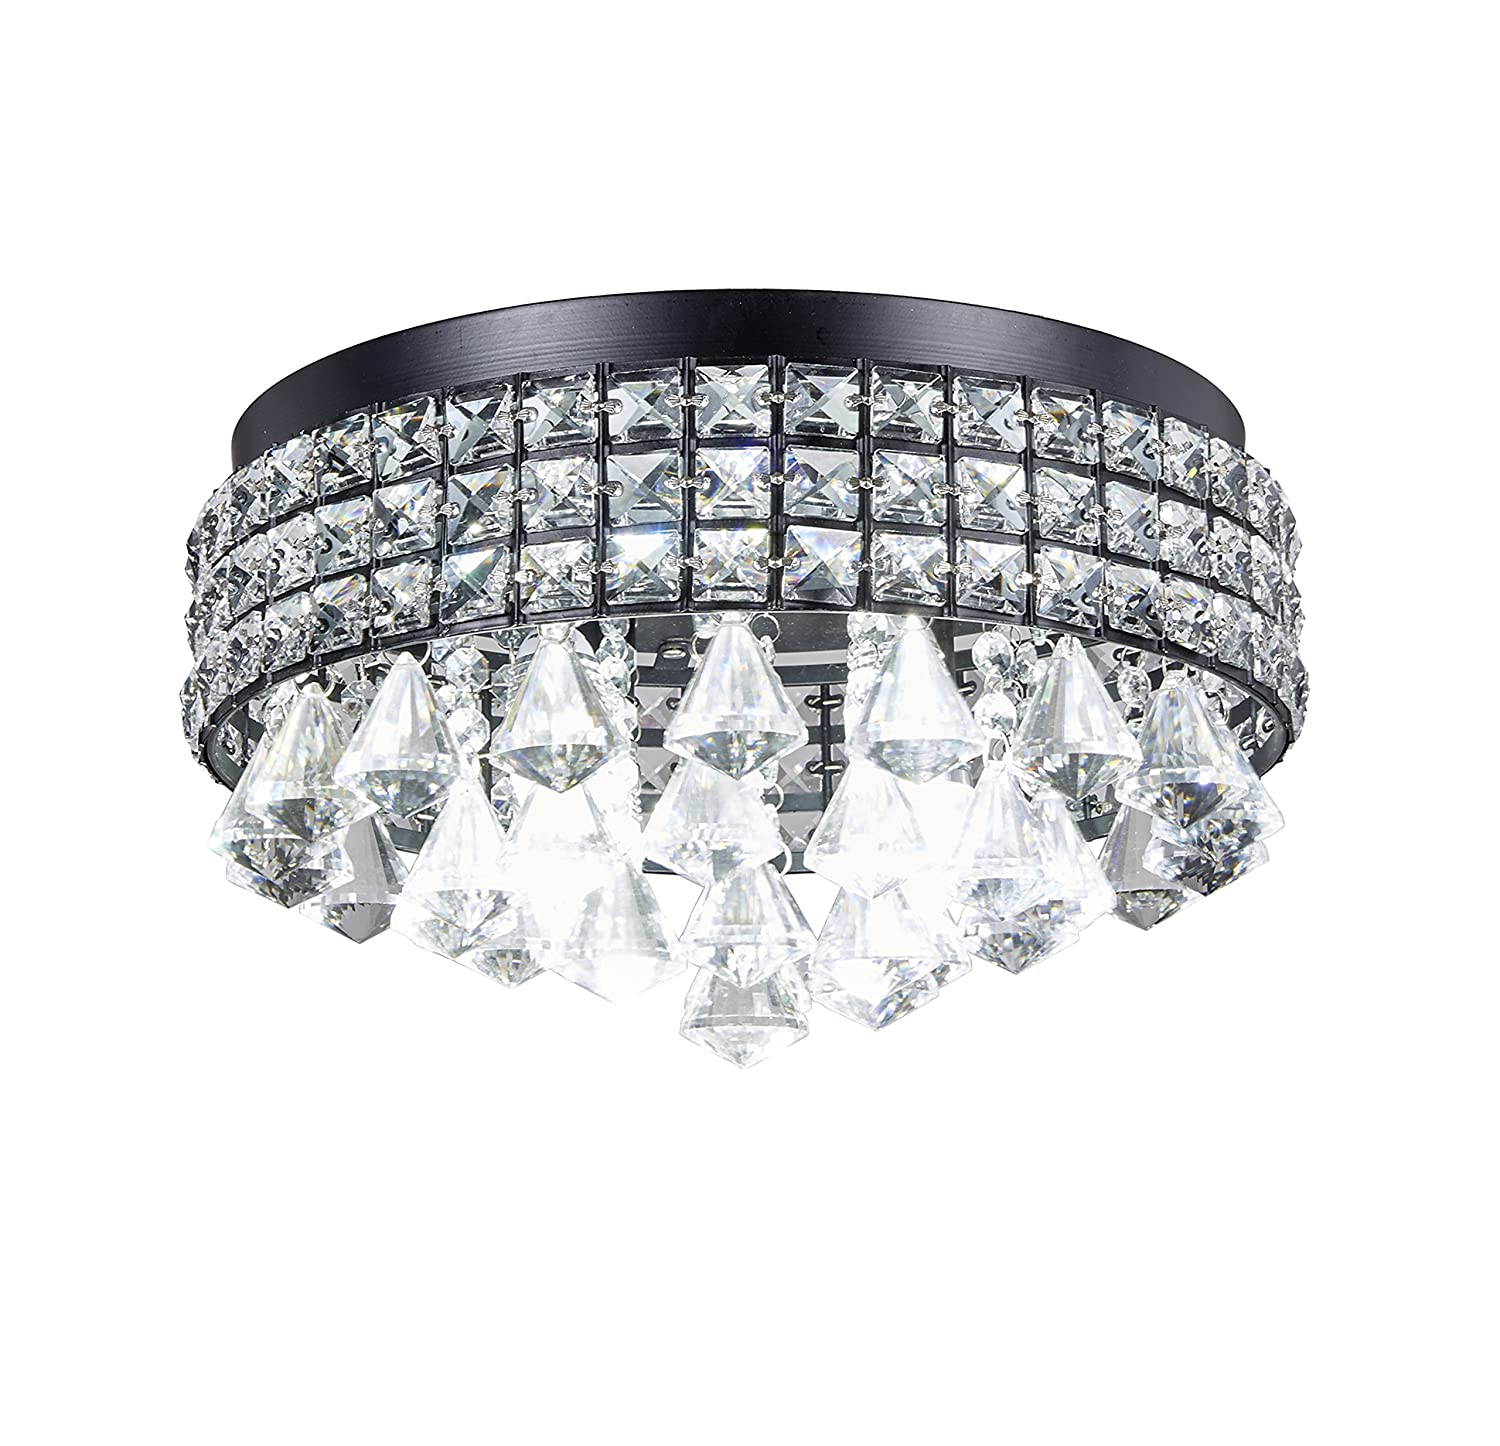 New Galaxy Lighting 4-Light Antique Black Metal Shade Flushmount Crystal Chandelier Ceiling Fixture